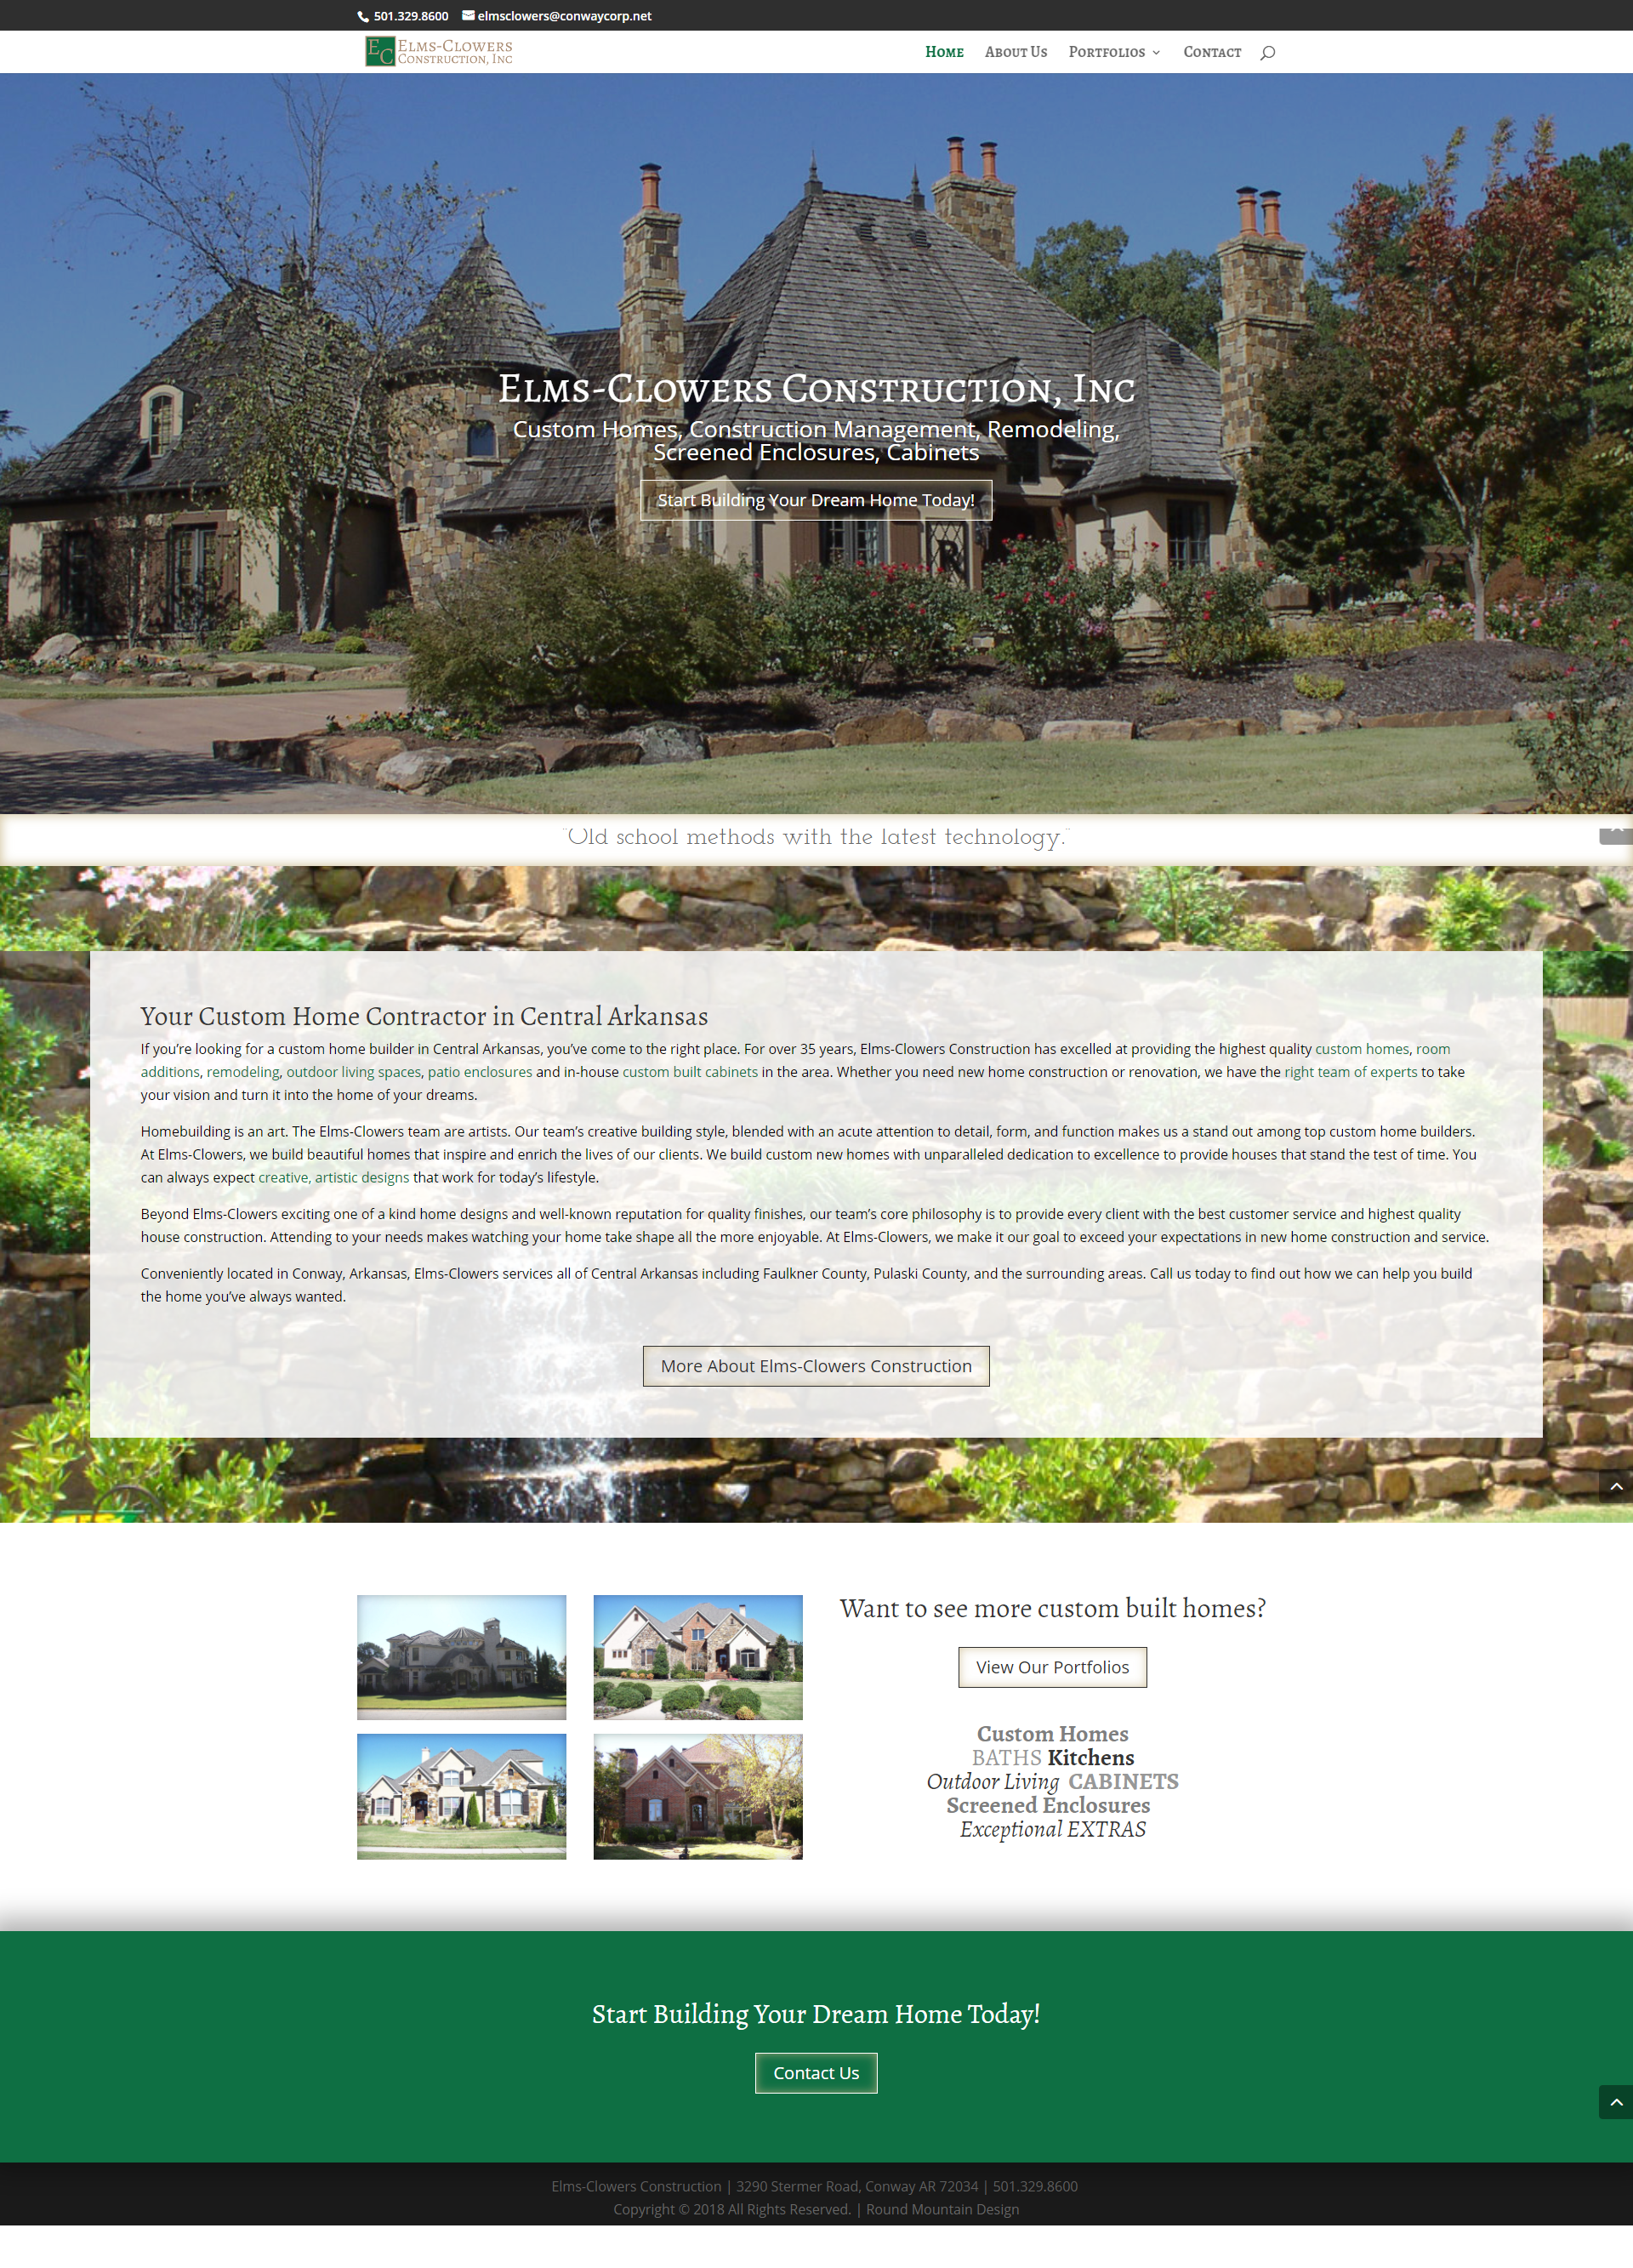 Elms-Clowers Constuction Website